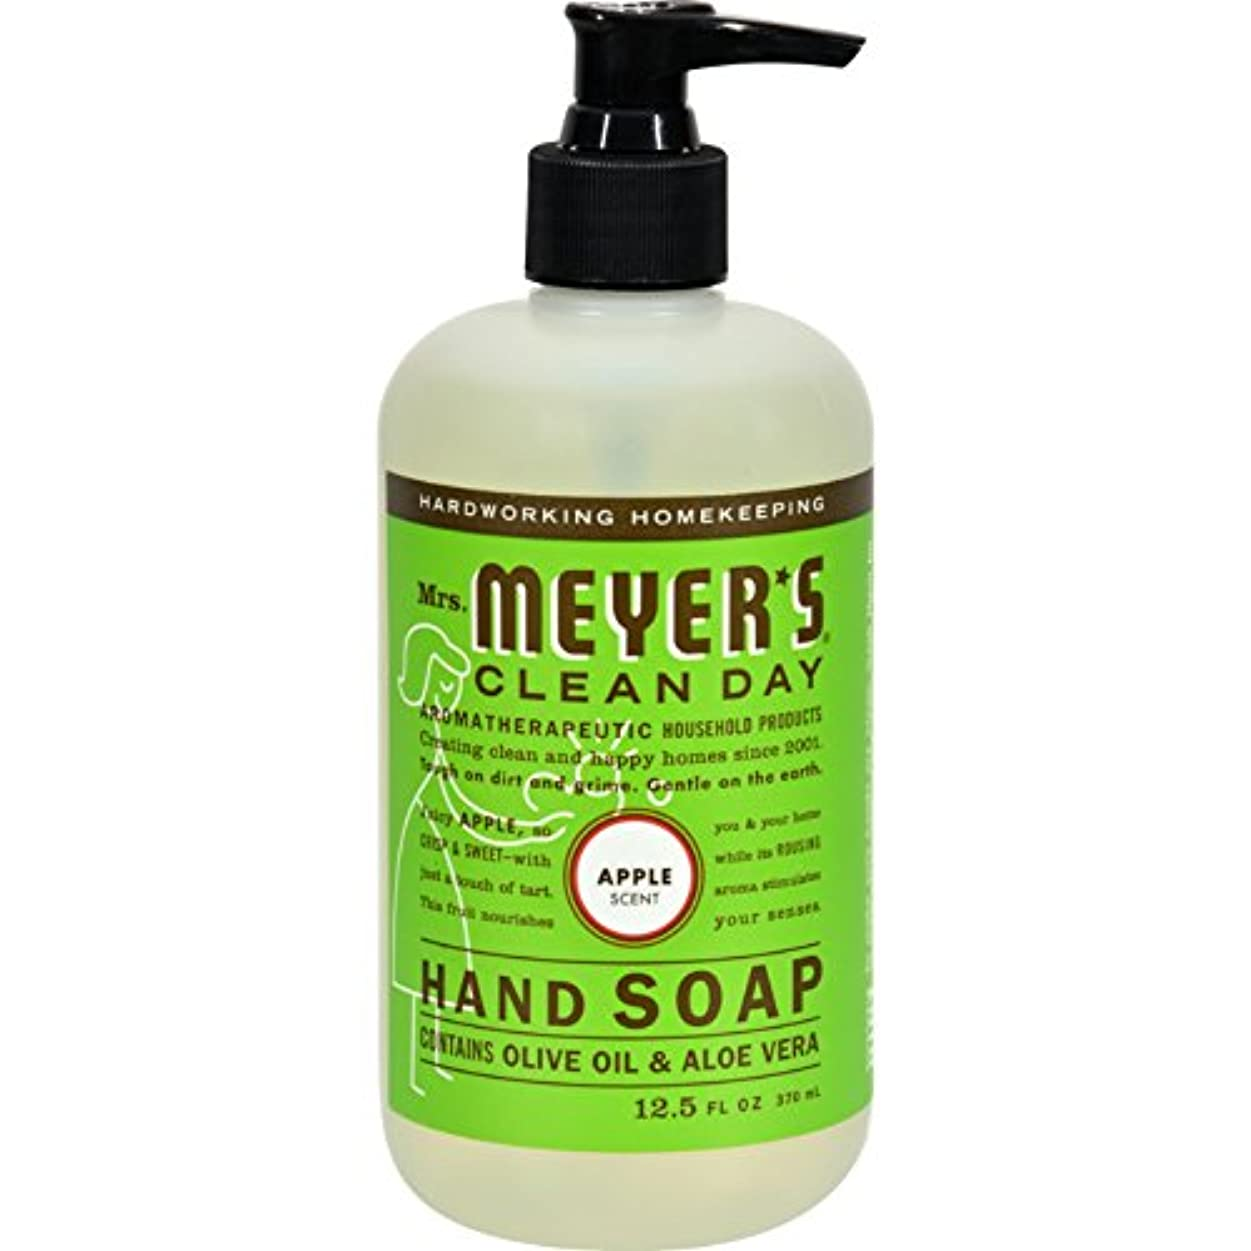 橋脚声を出してモットーLiquid Hand Soap - Apple - Case of 6 - 12.5 oz by Mrs. Meyer's